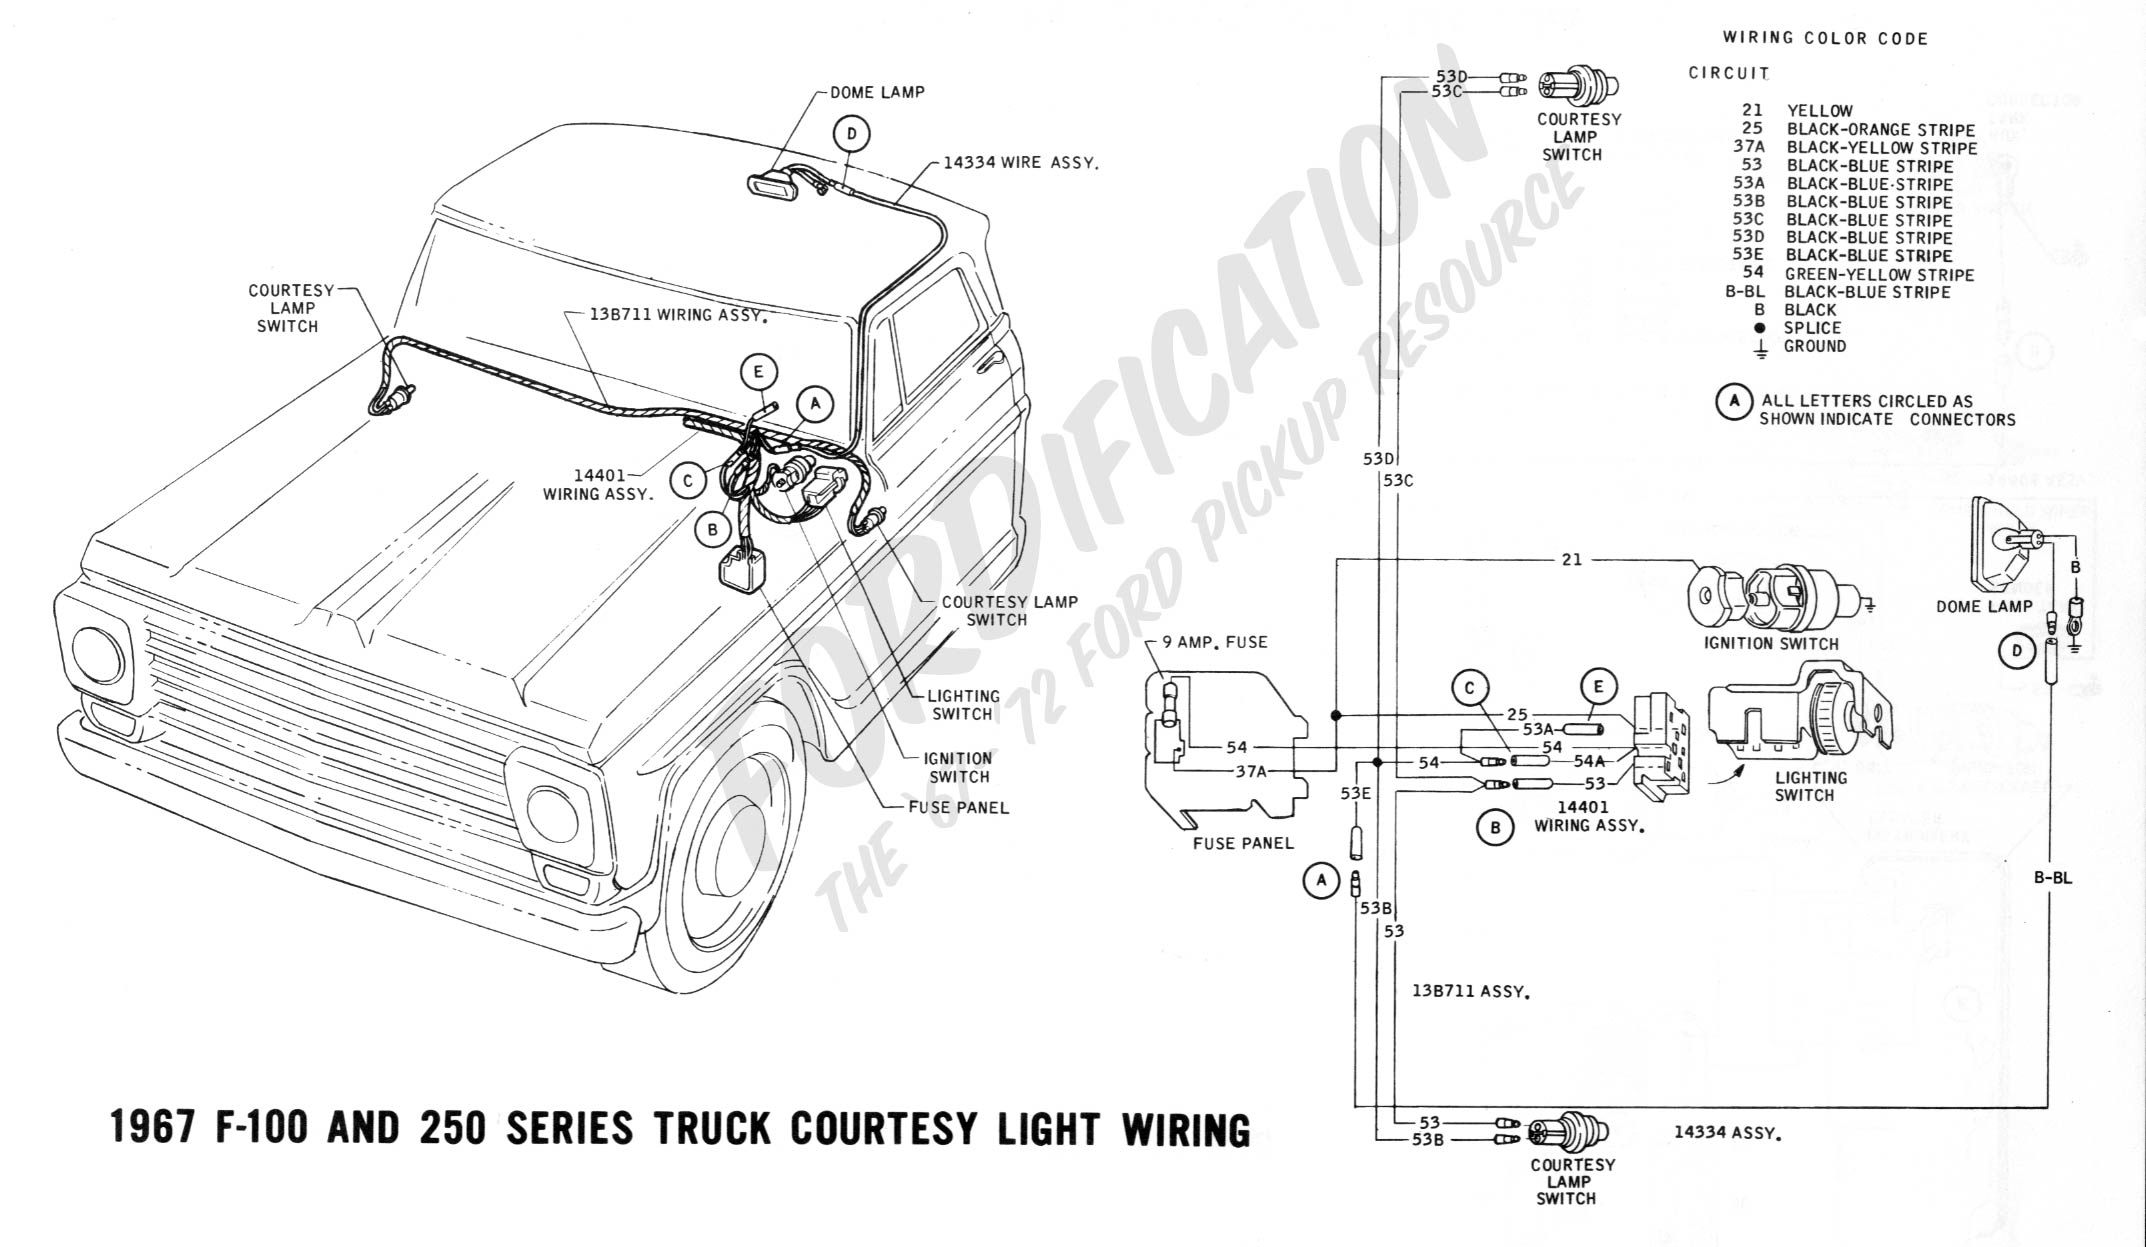 wiring 1967courtesylight ford truck technical drawings and schematics section h wiring 1965 ford truck wiring diagram at nearapp.co